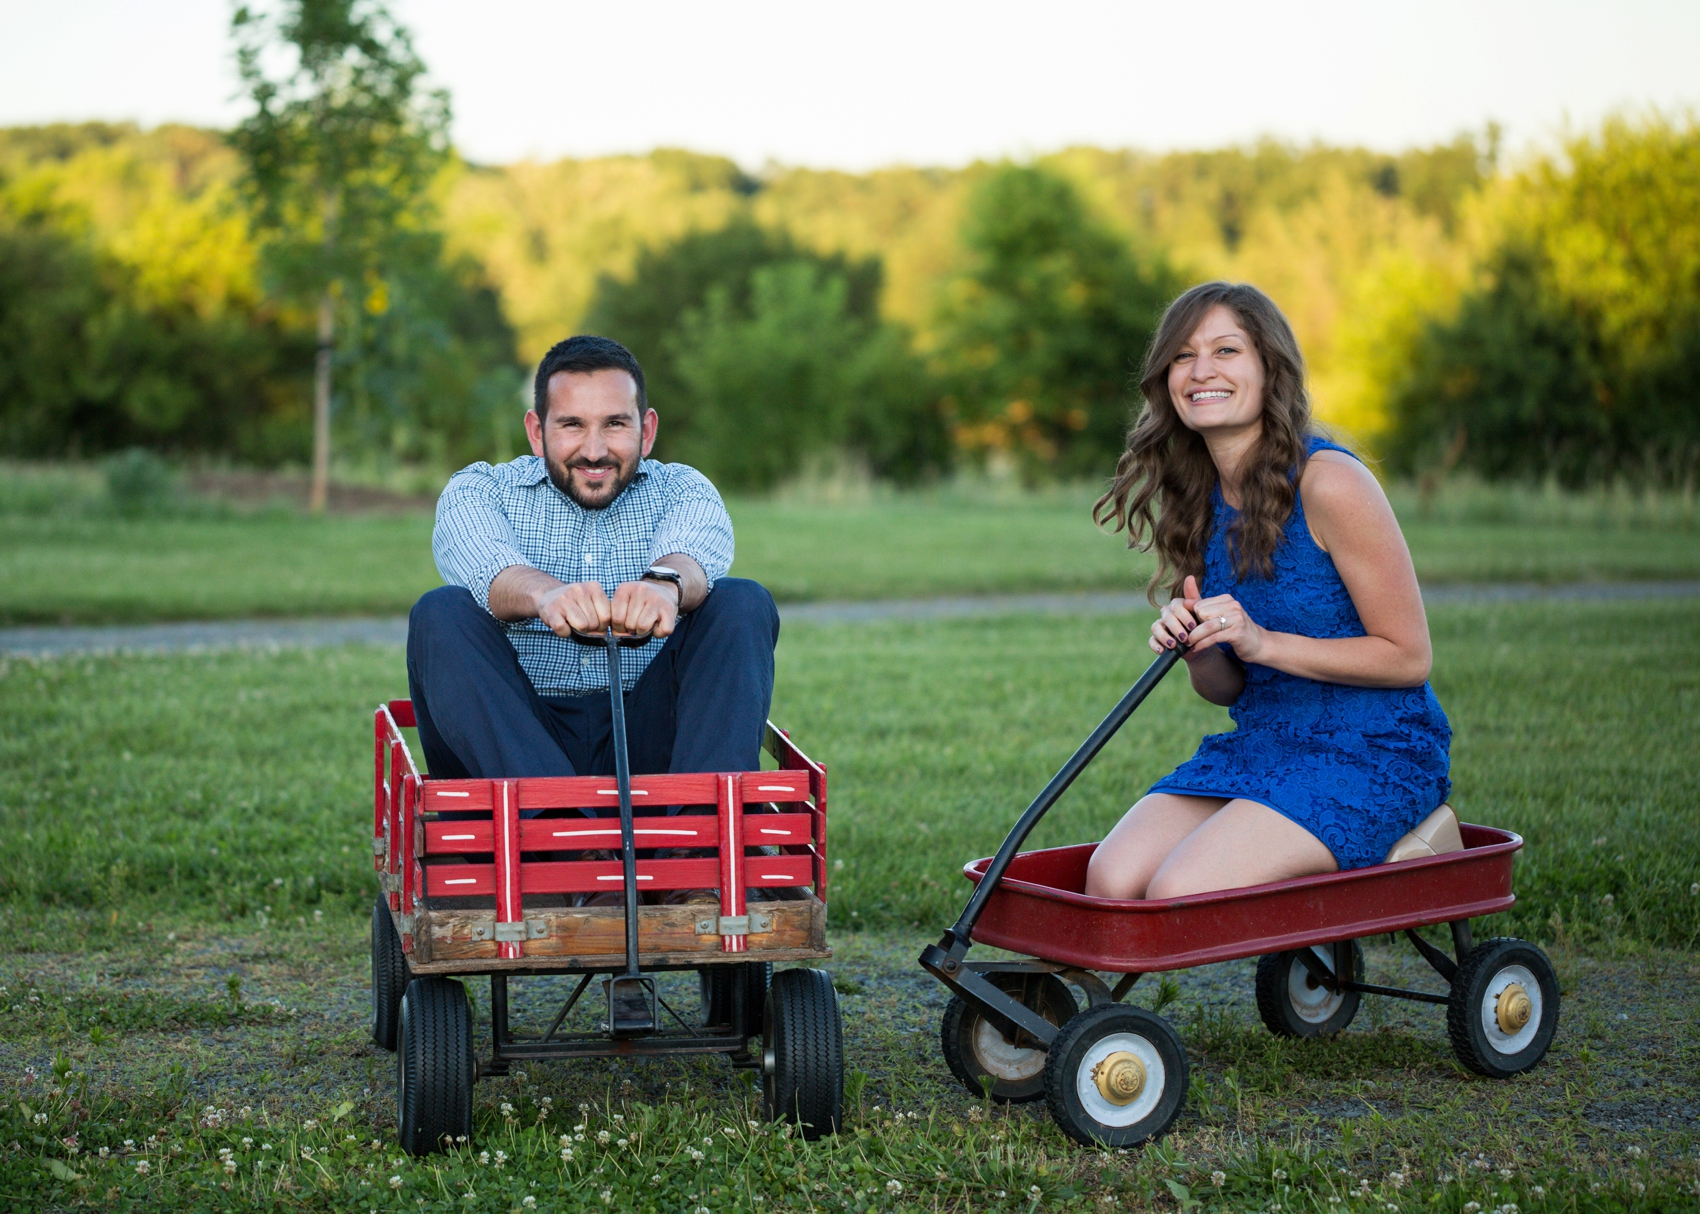 Seven-Oaks-Lavender-Farm-Engagement-Session-2019-0354.jpg